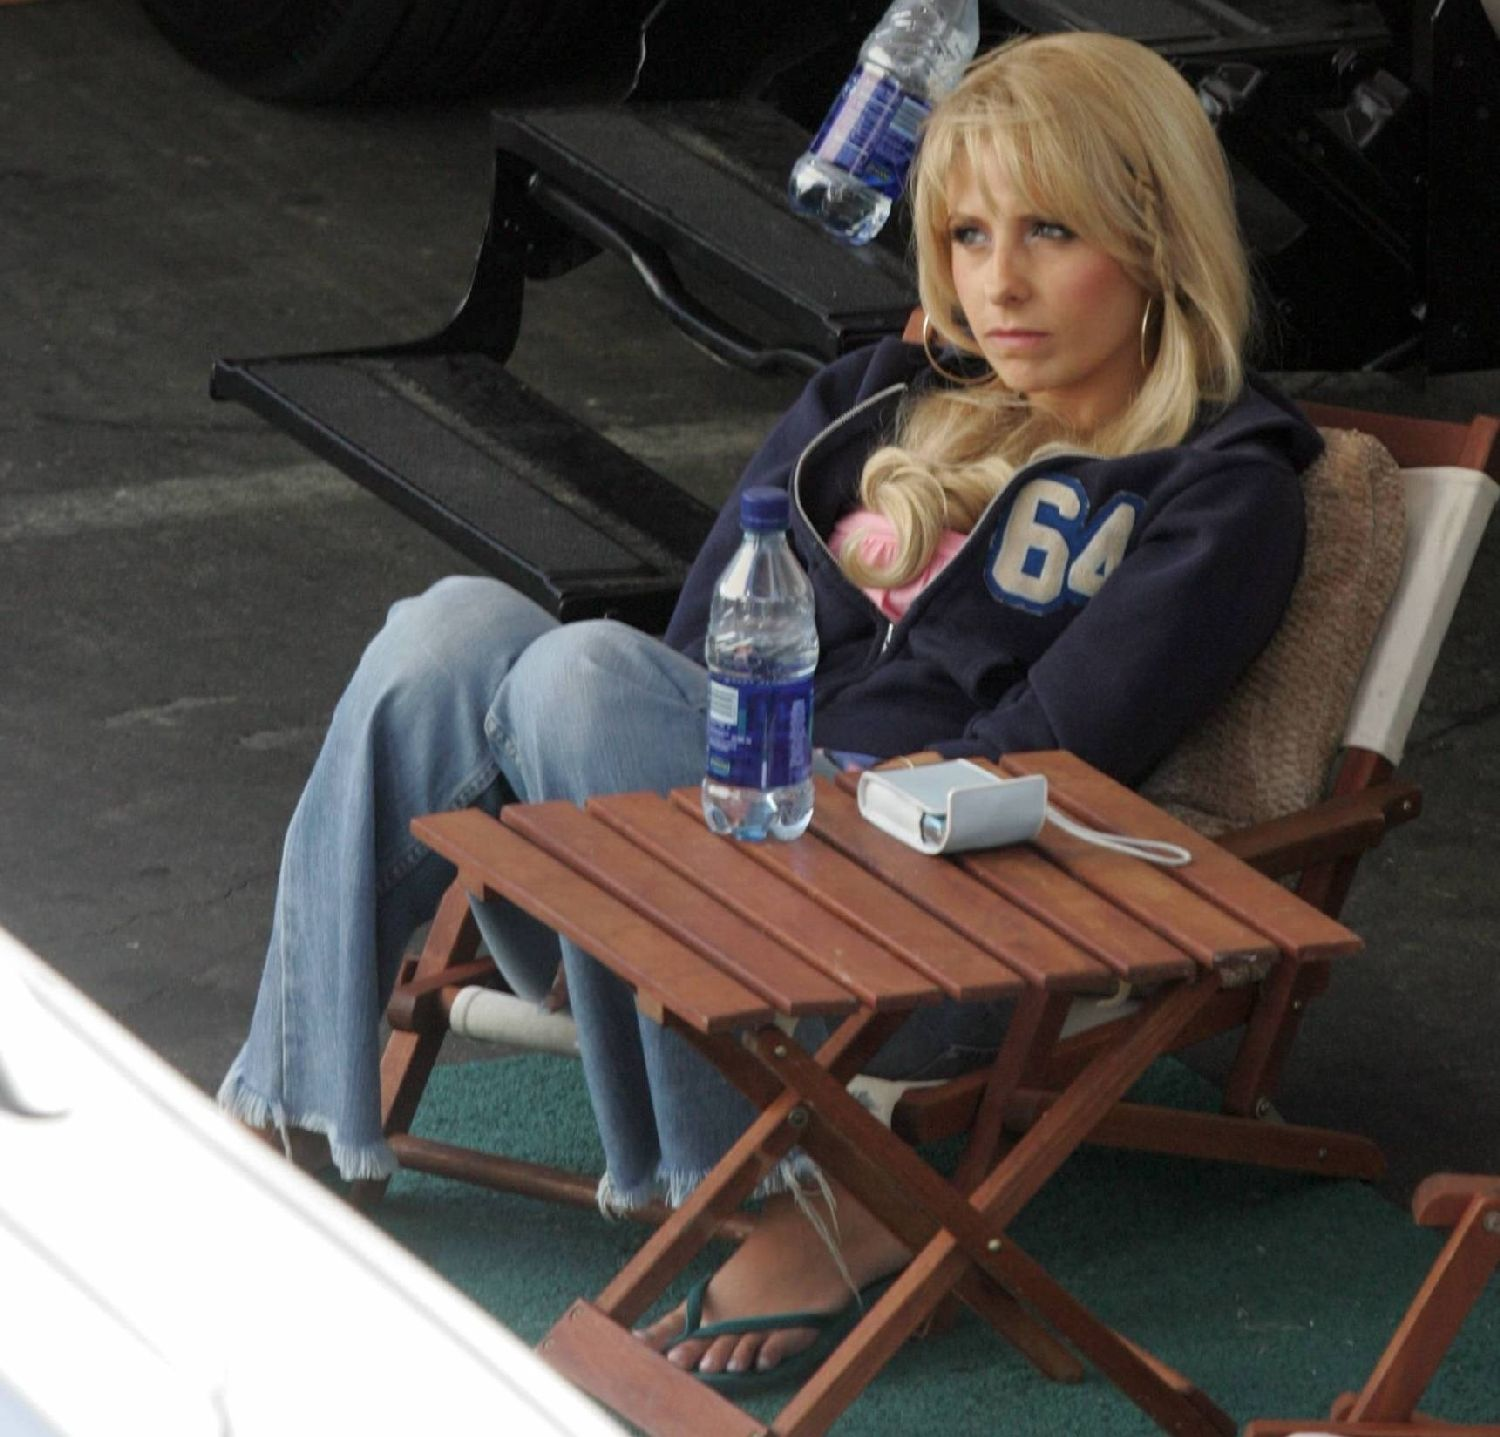 On the set of Southland Tales